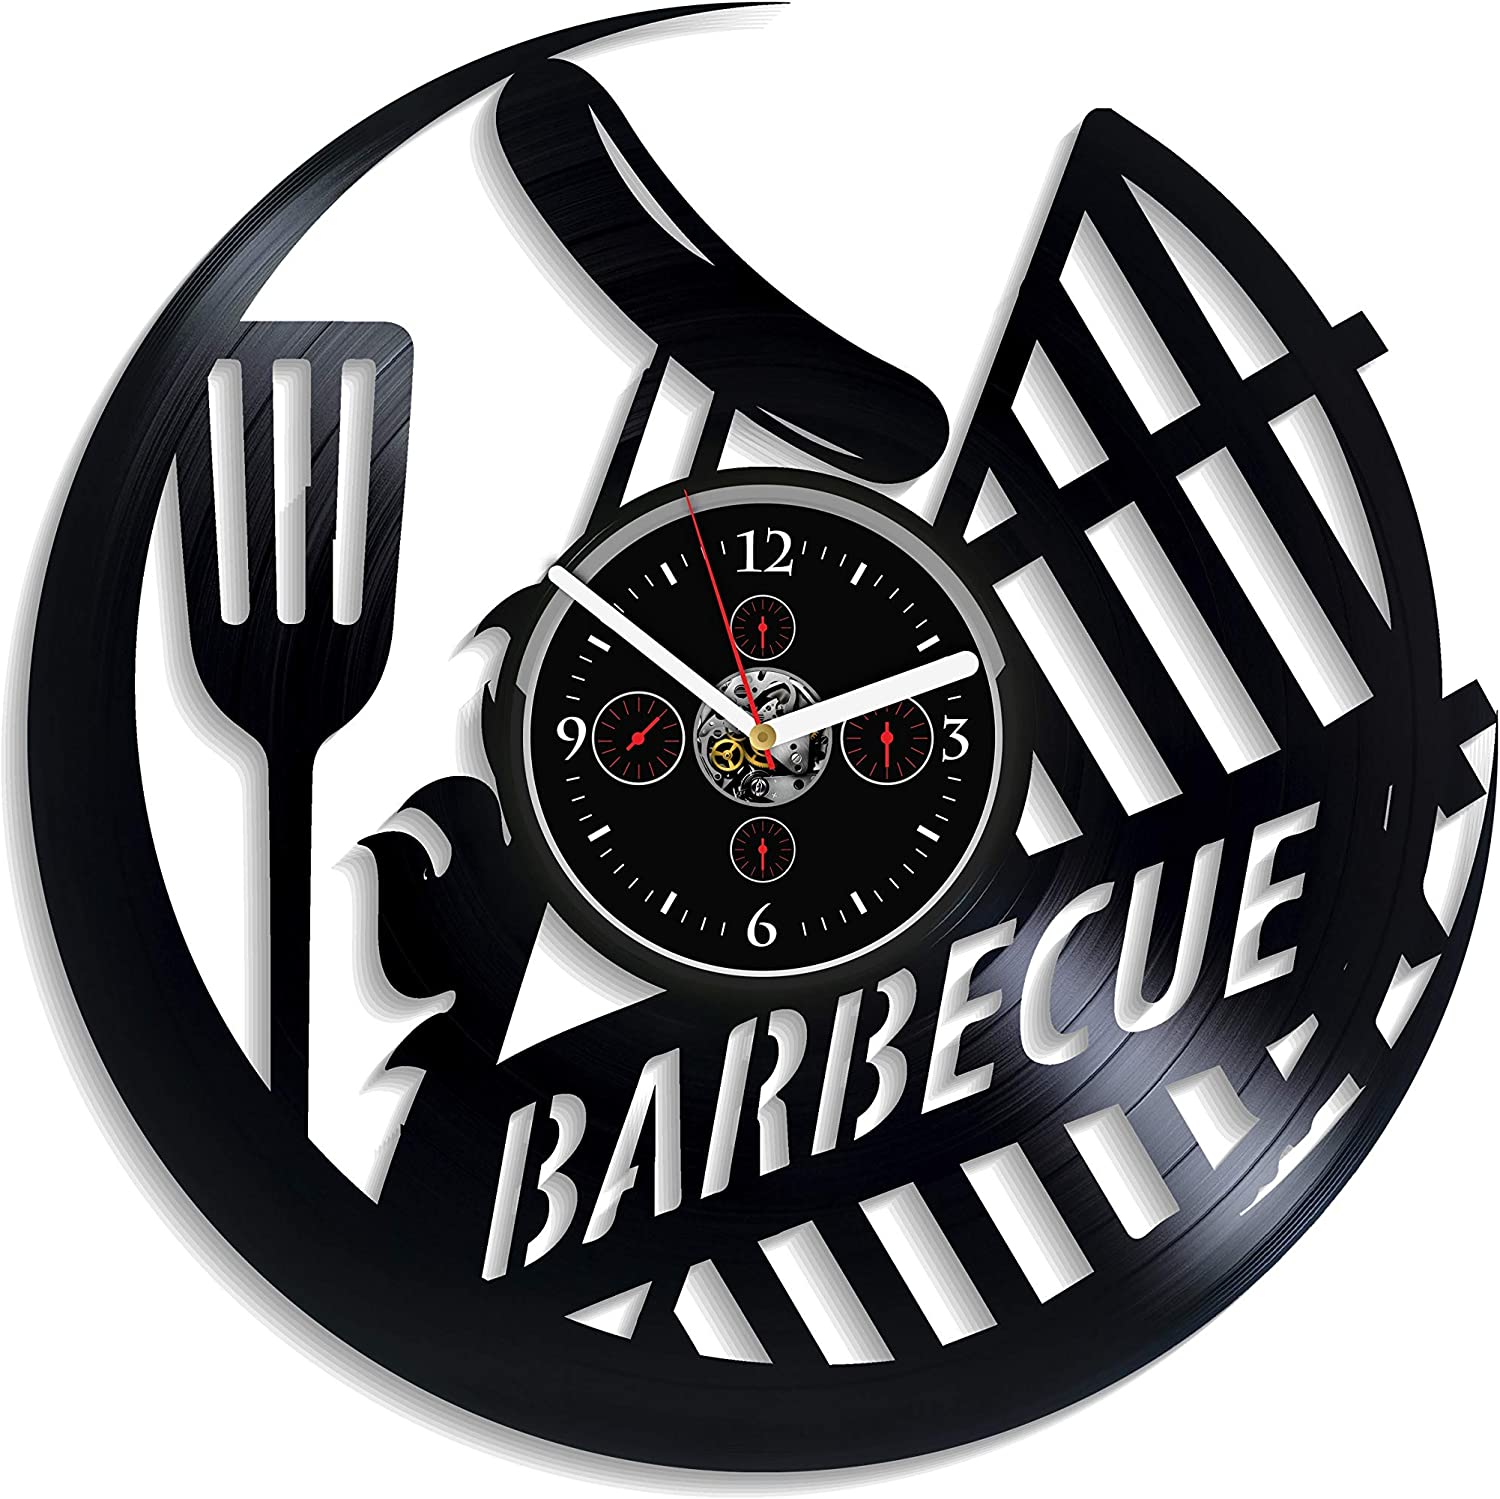 Barbecue Wall Clock Vintage Vinyl Record Retro Wall Clock Large Food Art Exclusive Wall Clock 12 Inch Birthday Gift Barbecue Gift for Men and Woman New Year Gift Handmade Wall Clock